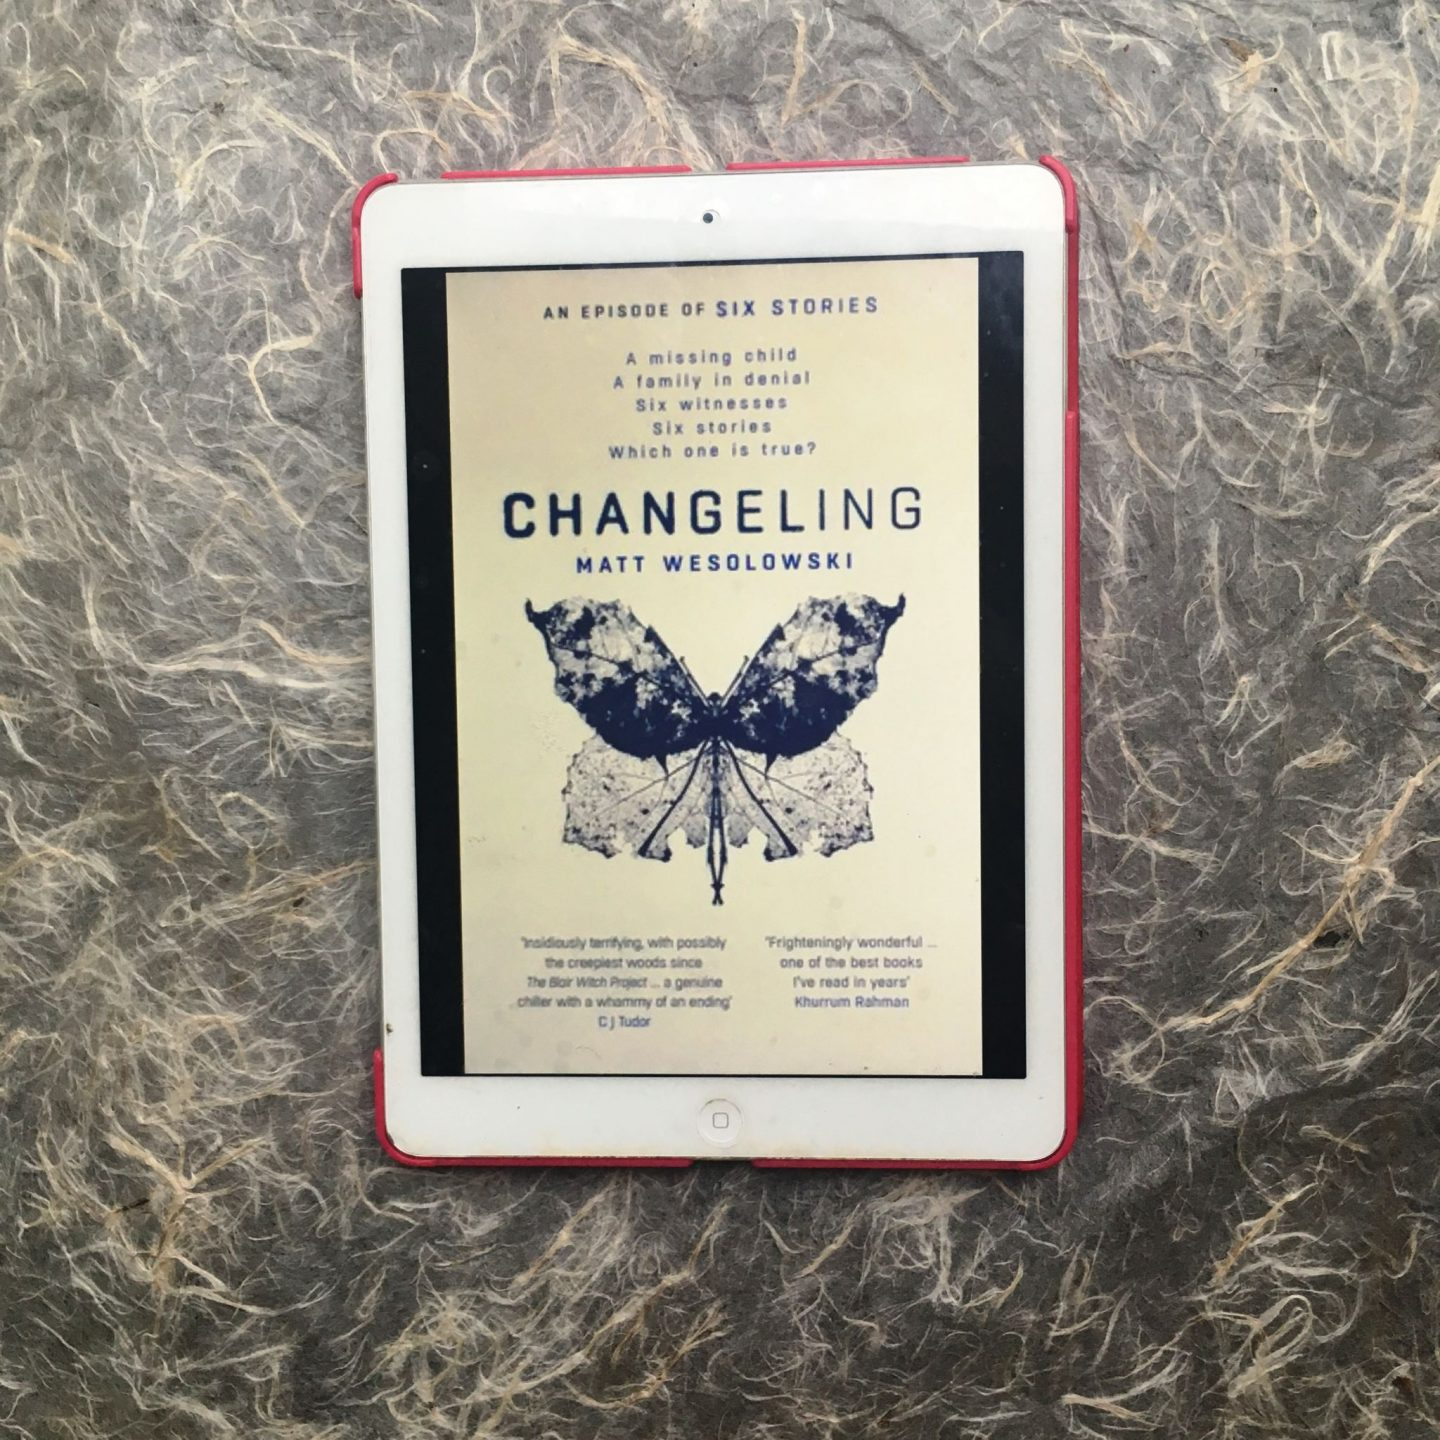 Changeling; a truly gripping thriller